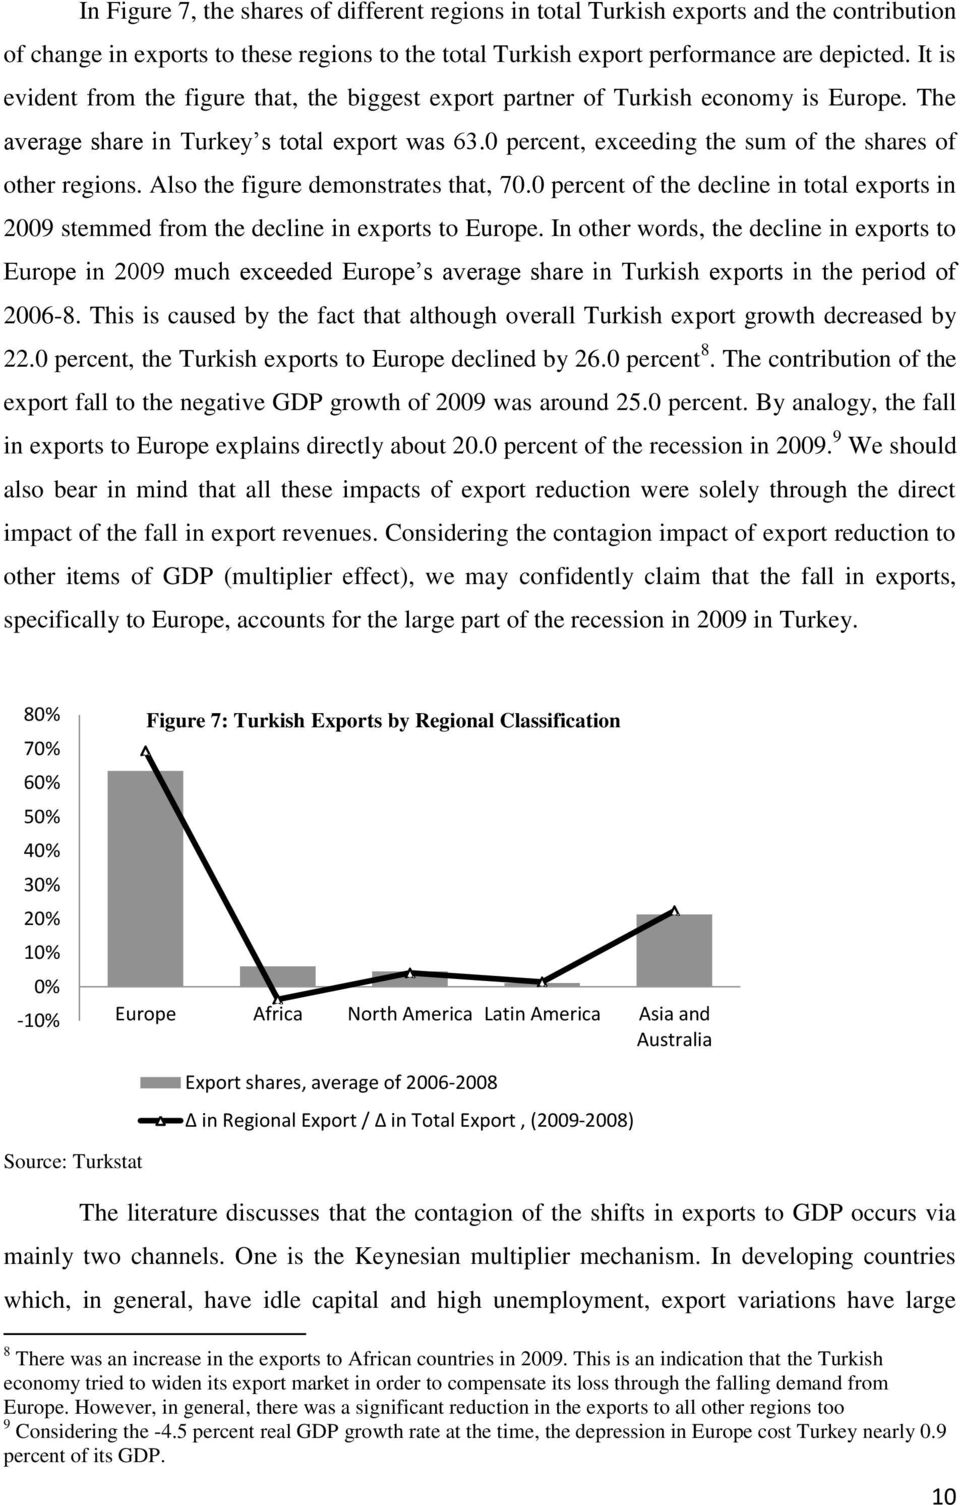 0 percent, exceeding the sum of the shares of other regions. Also the figure demonstrates that, 70.0 percent of the decline in total exports in 2009 stemmed from the decline in exports to Europe.